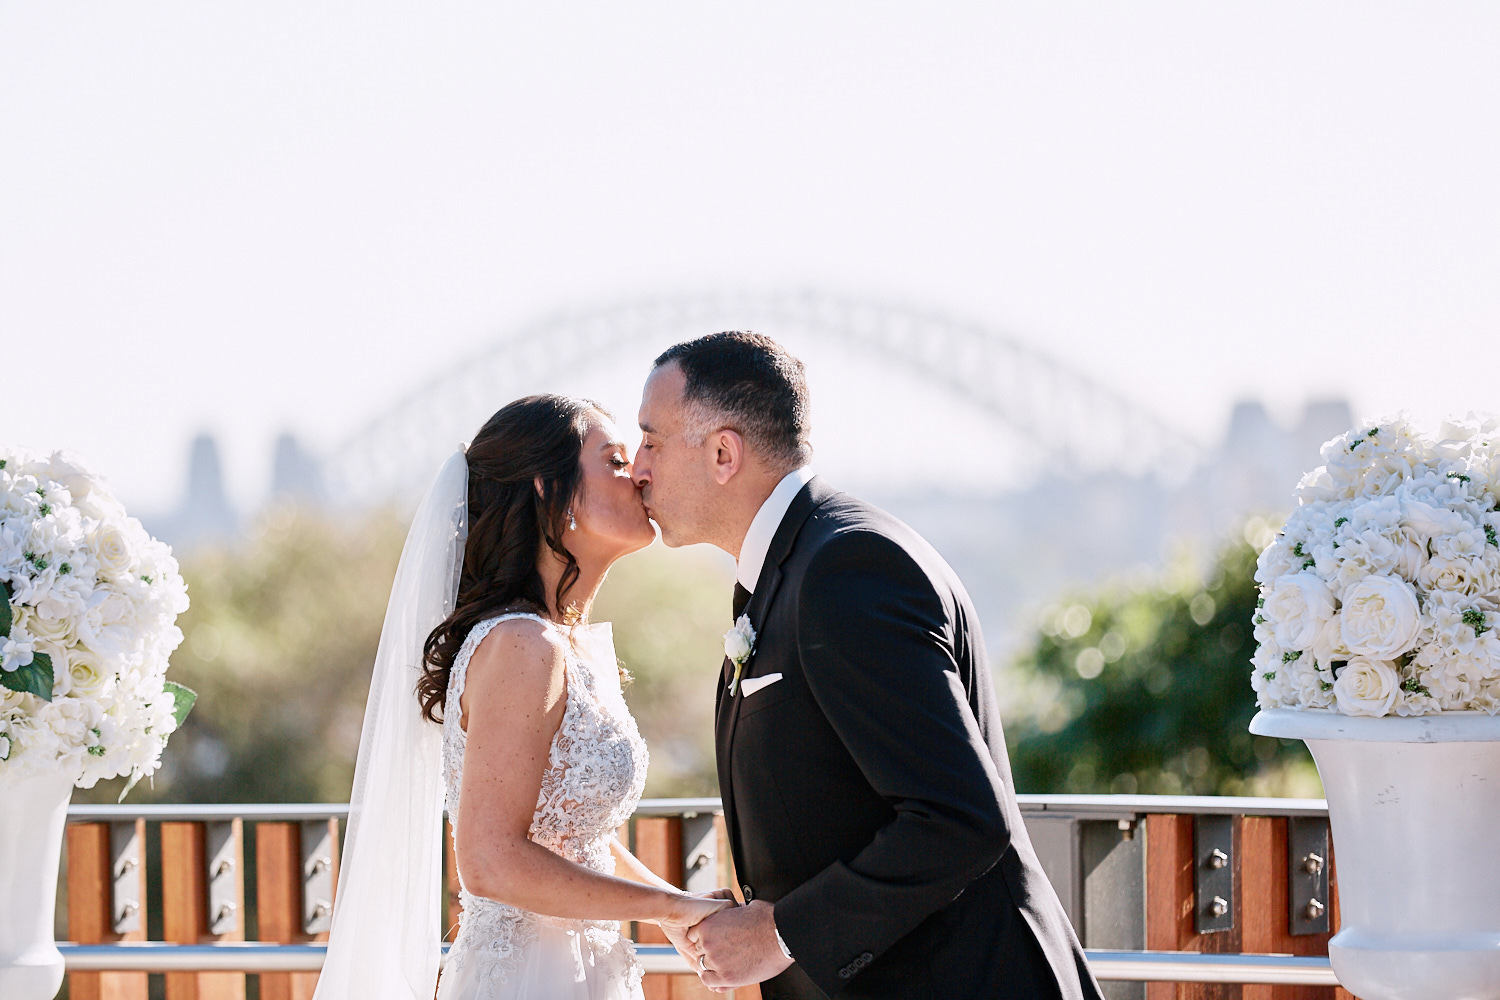 Bride and grooms first kiss in front of the harbour bridge at Taronga Zoo by Blue Mountains wedding photographer Joshua Witheford